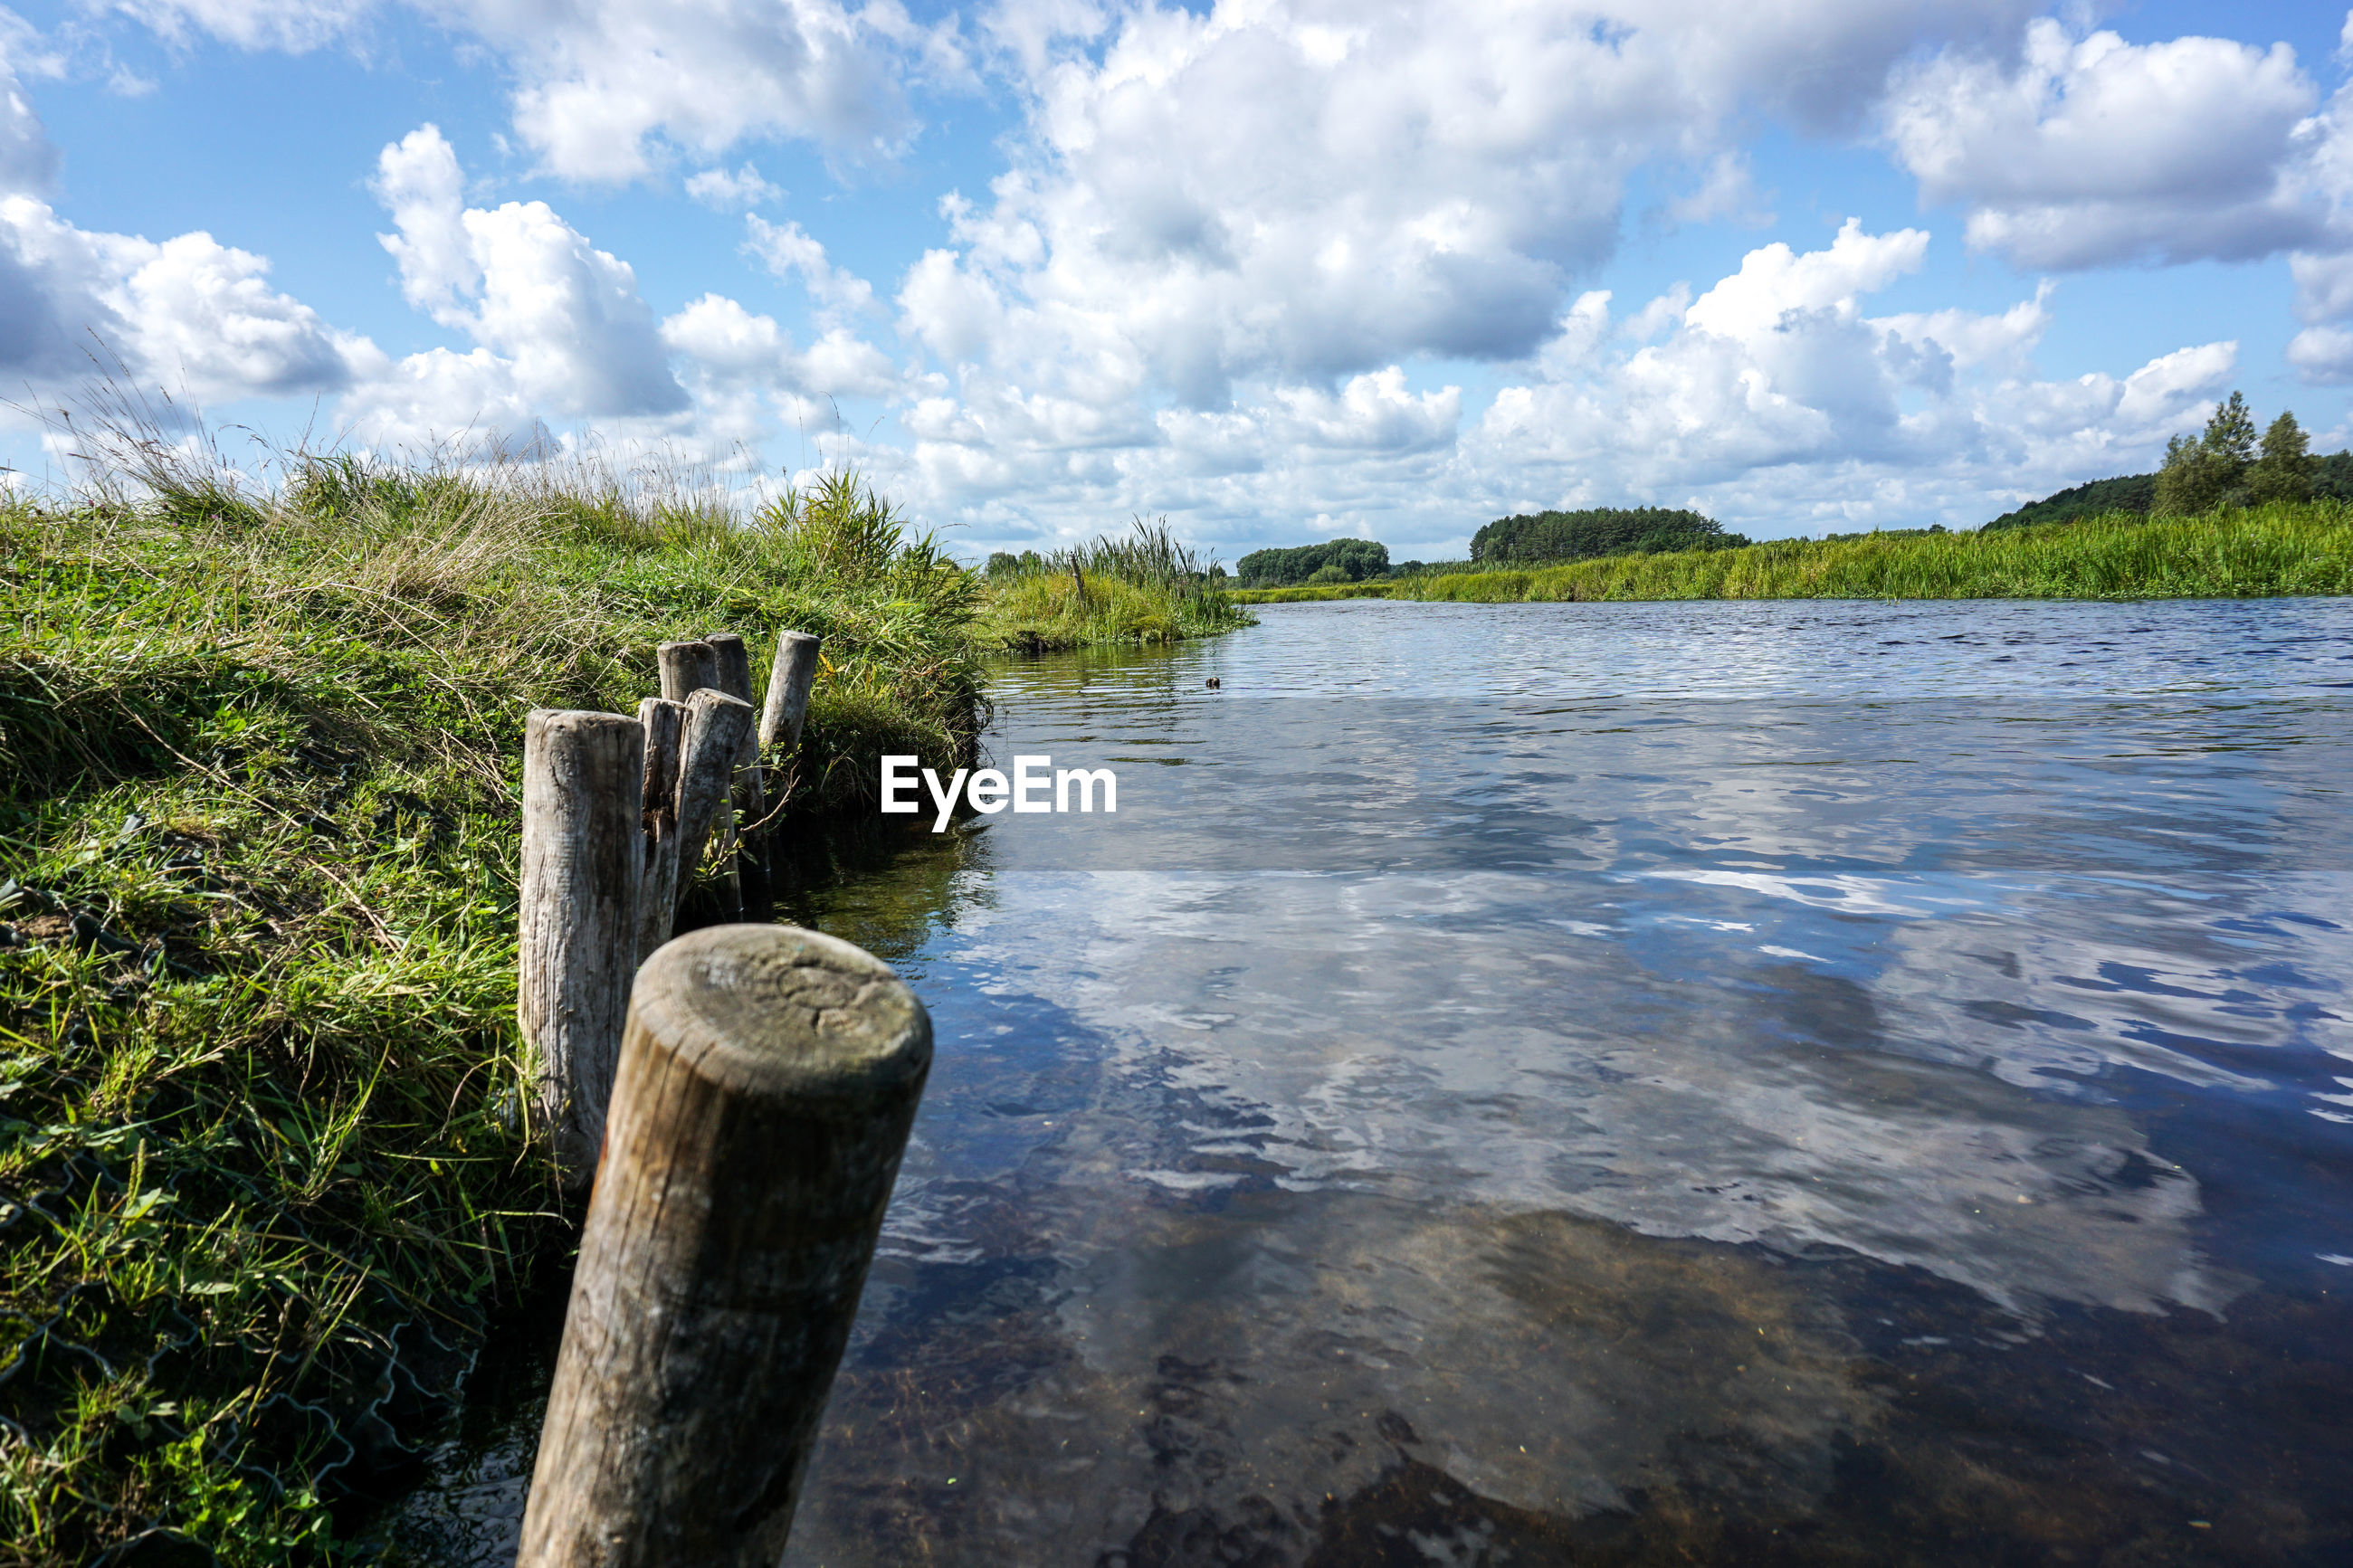 Wooden post in a river against cloudy sky